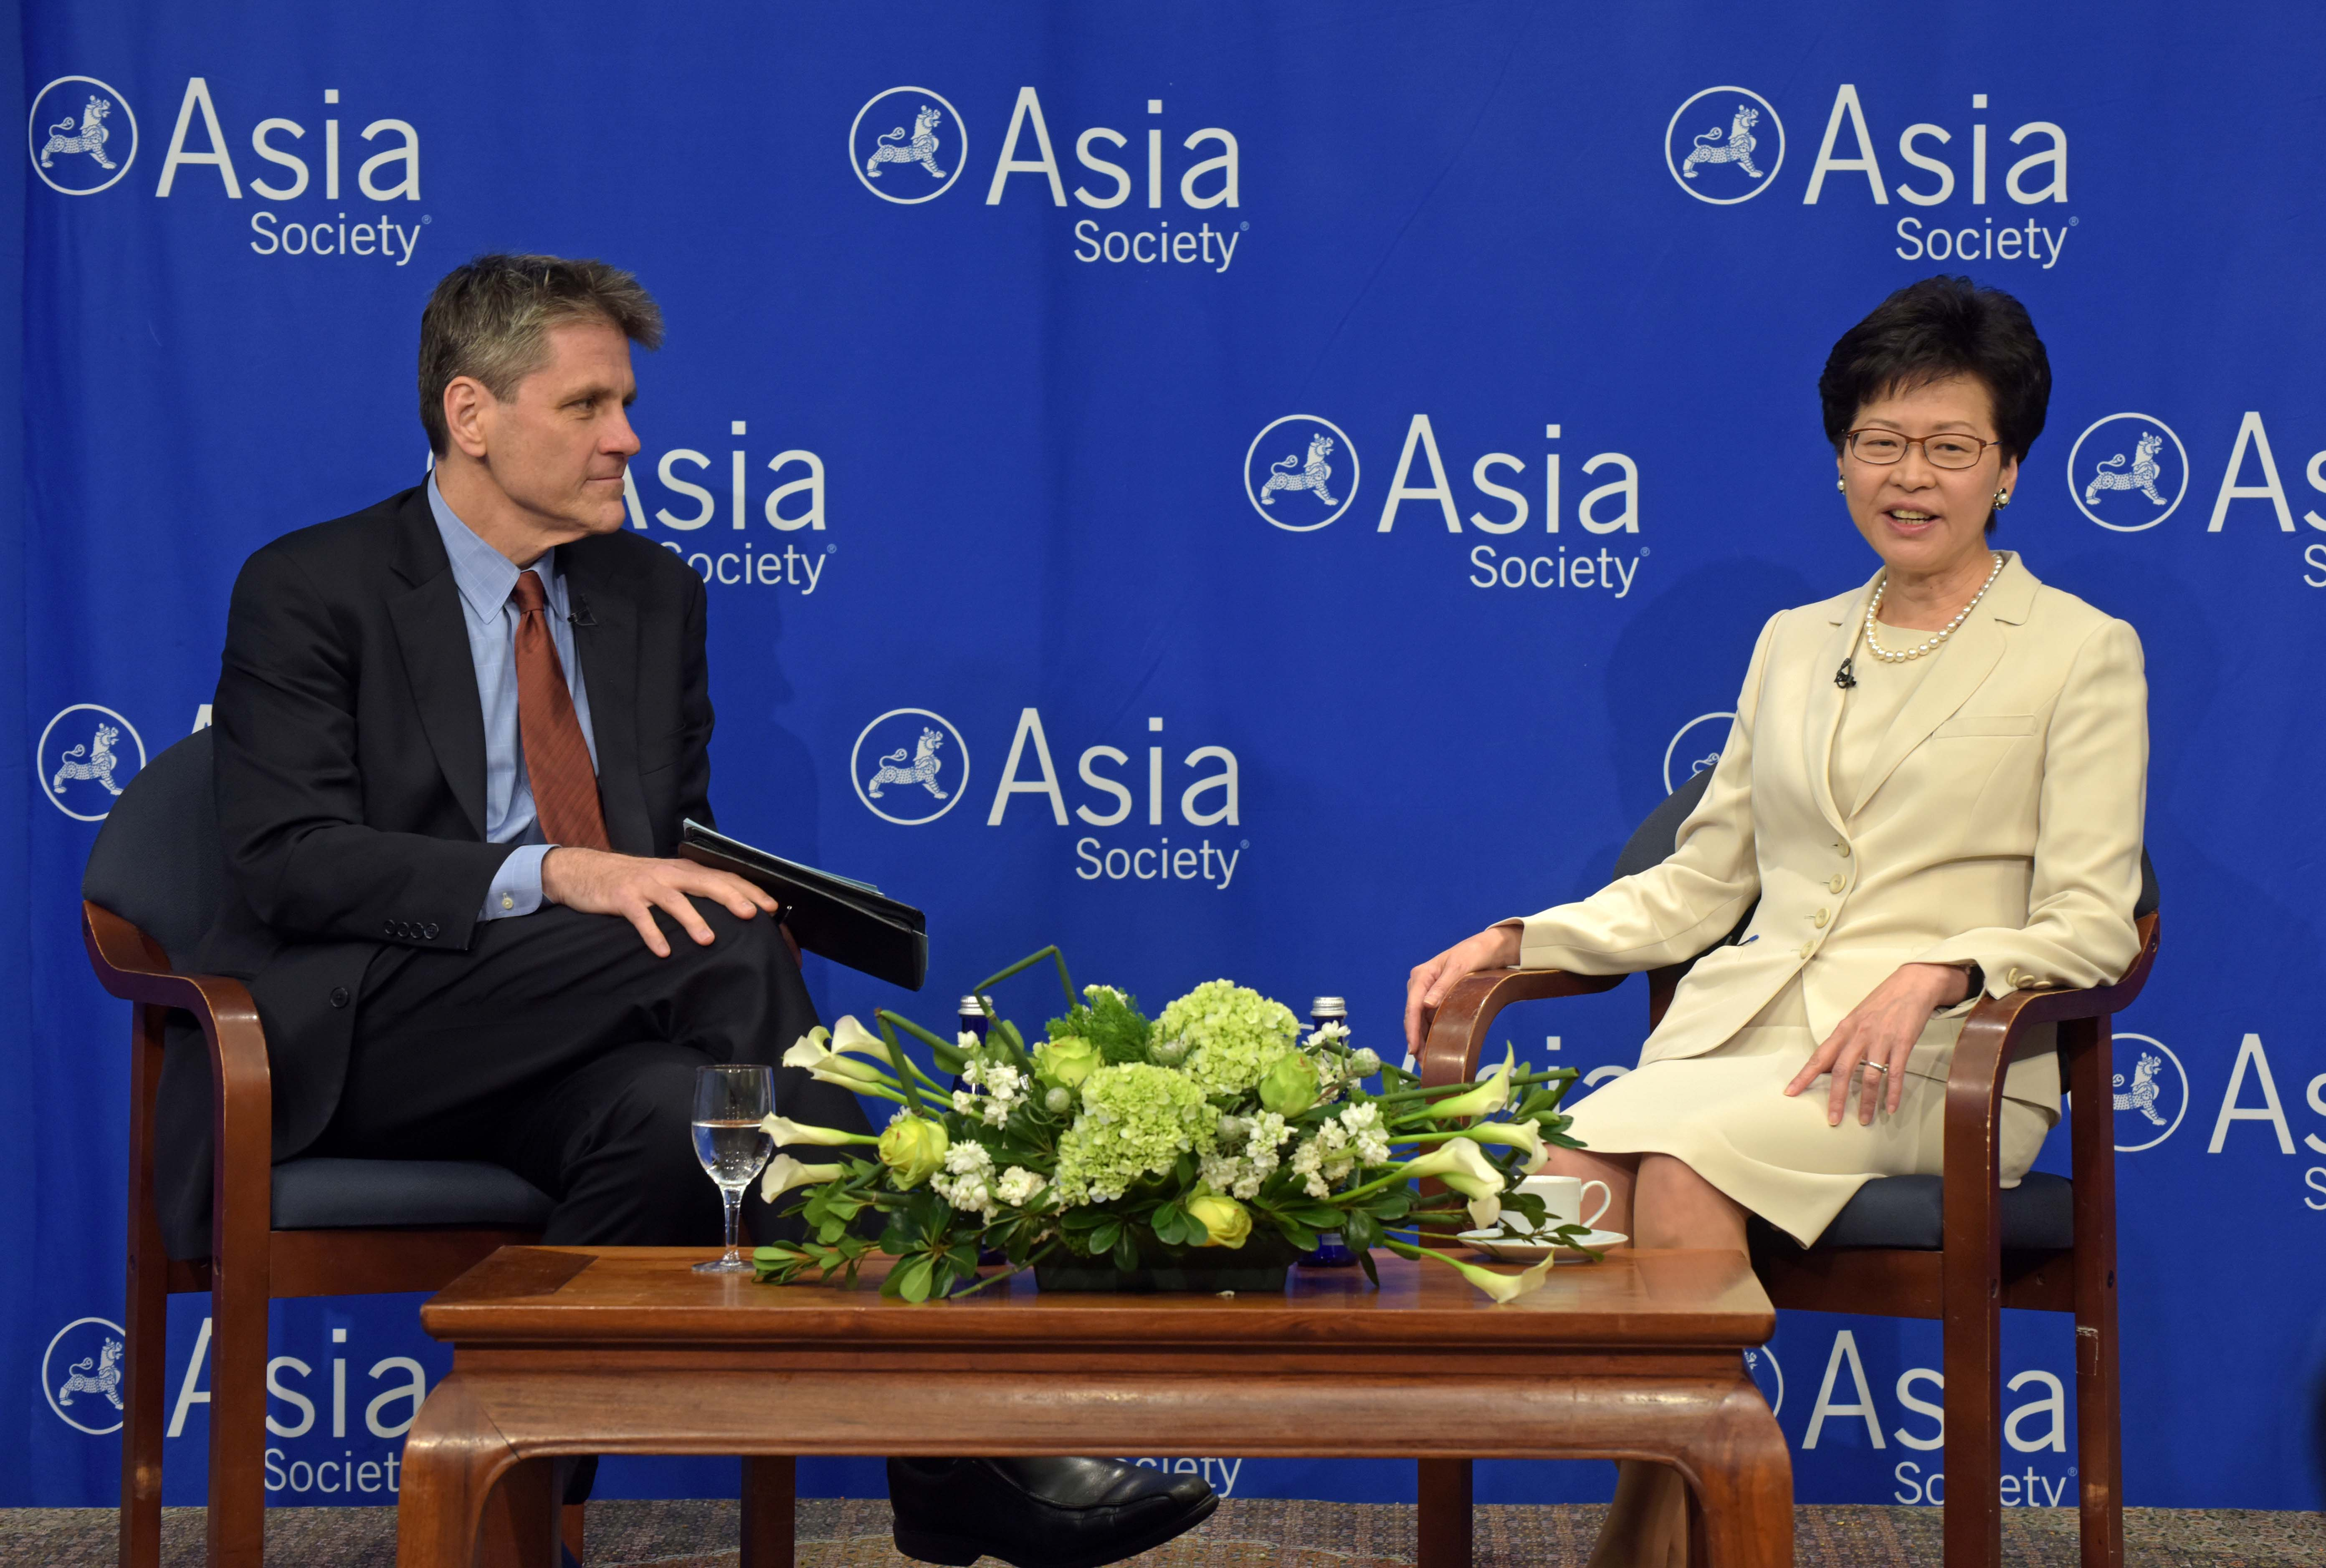 Chief Executive Carrie Lam of Hong Kong (photo credit: Asia Society/flickr)